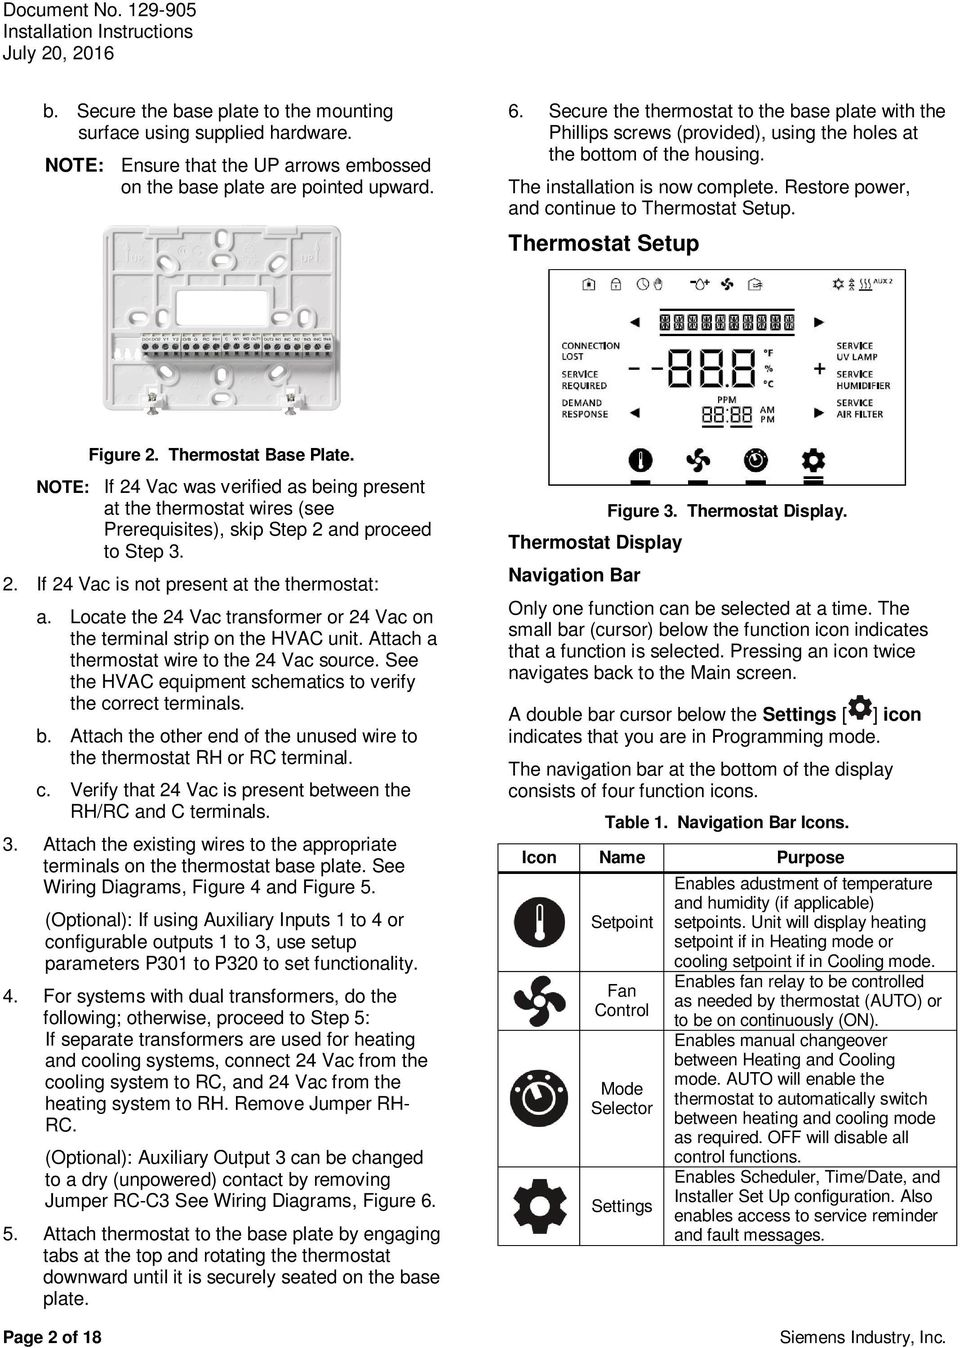 Rdy2000 Commercial Room Thermostat Pdf How To Hook Up A If 4 Vac Was Verified As Being Present At The Wires See Prerequisites